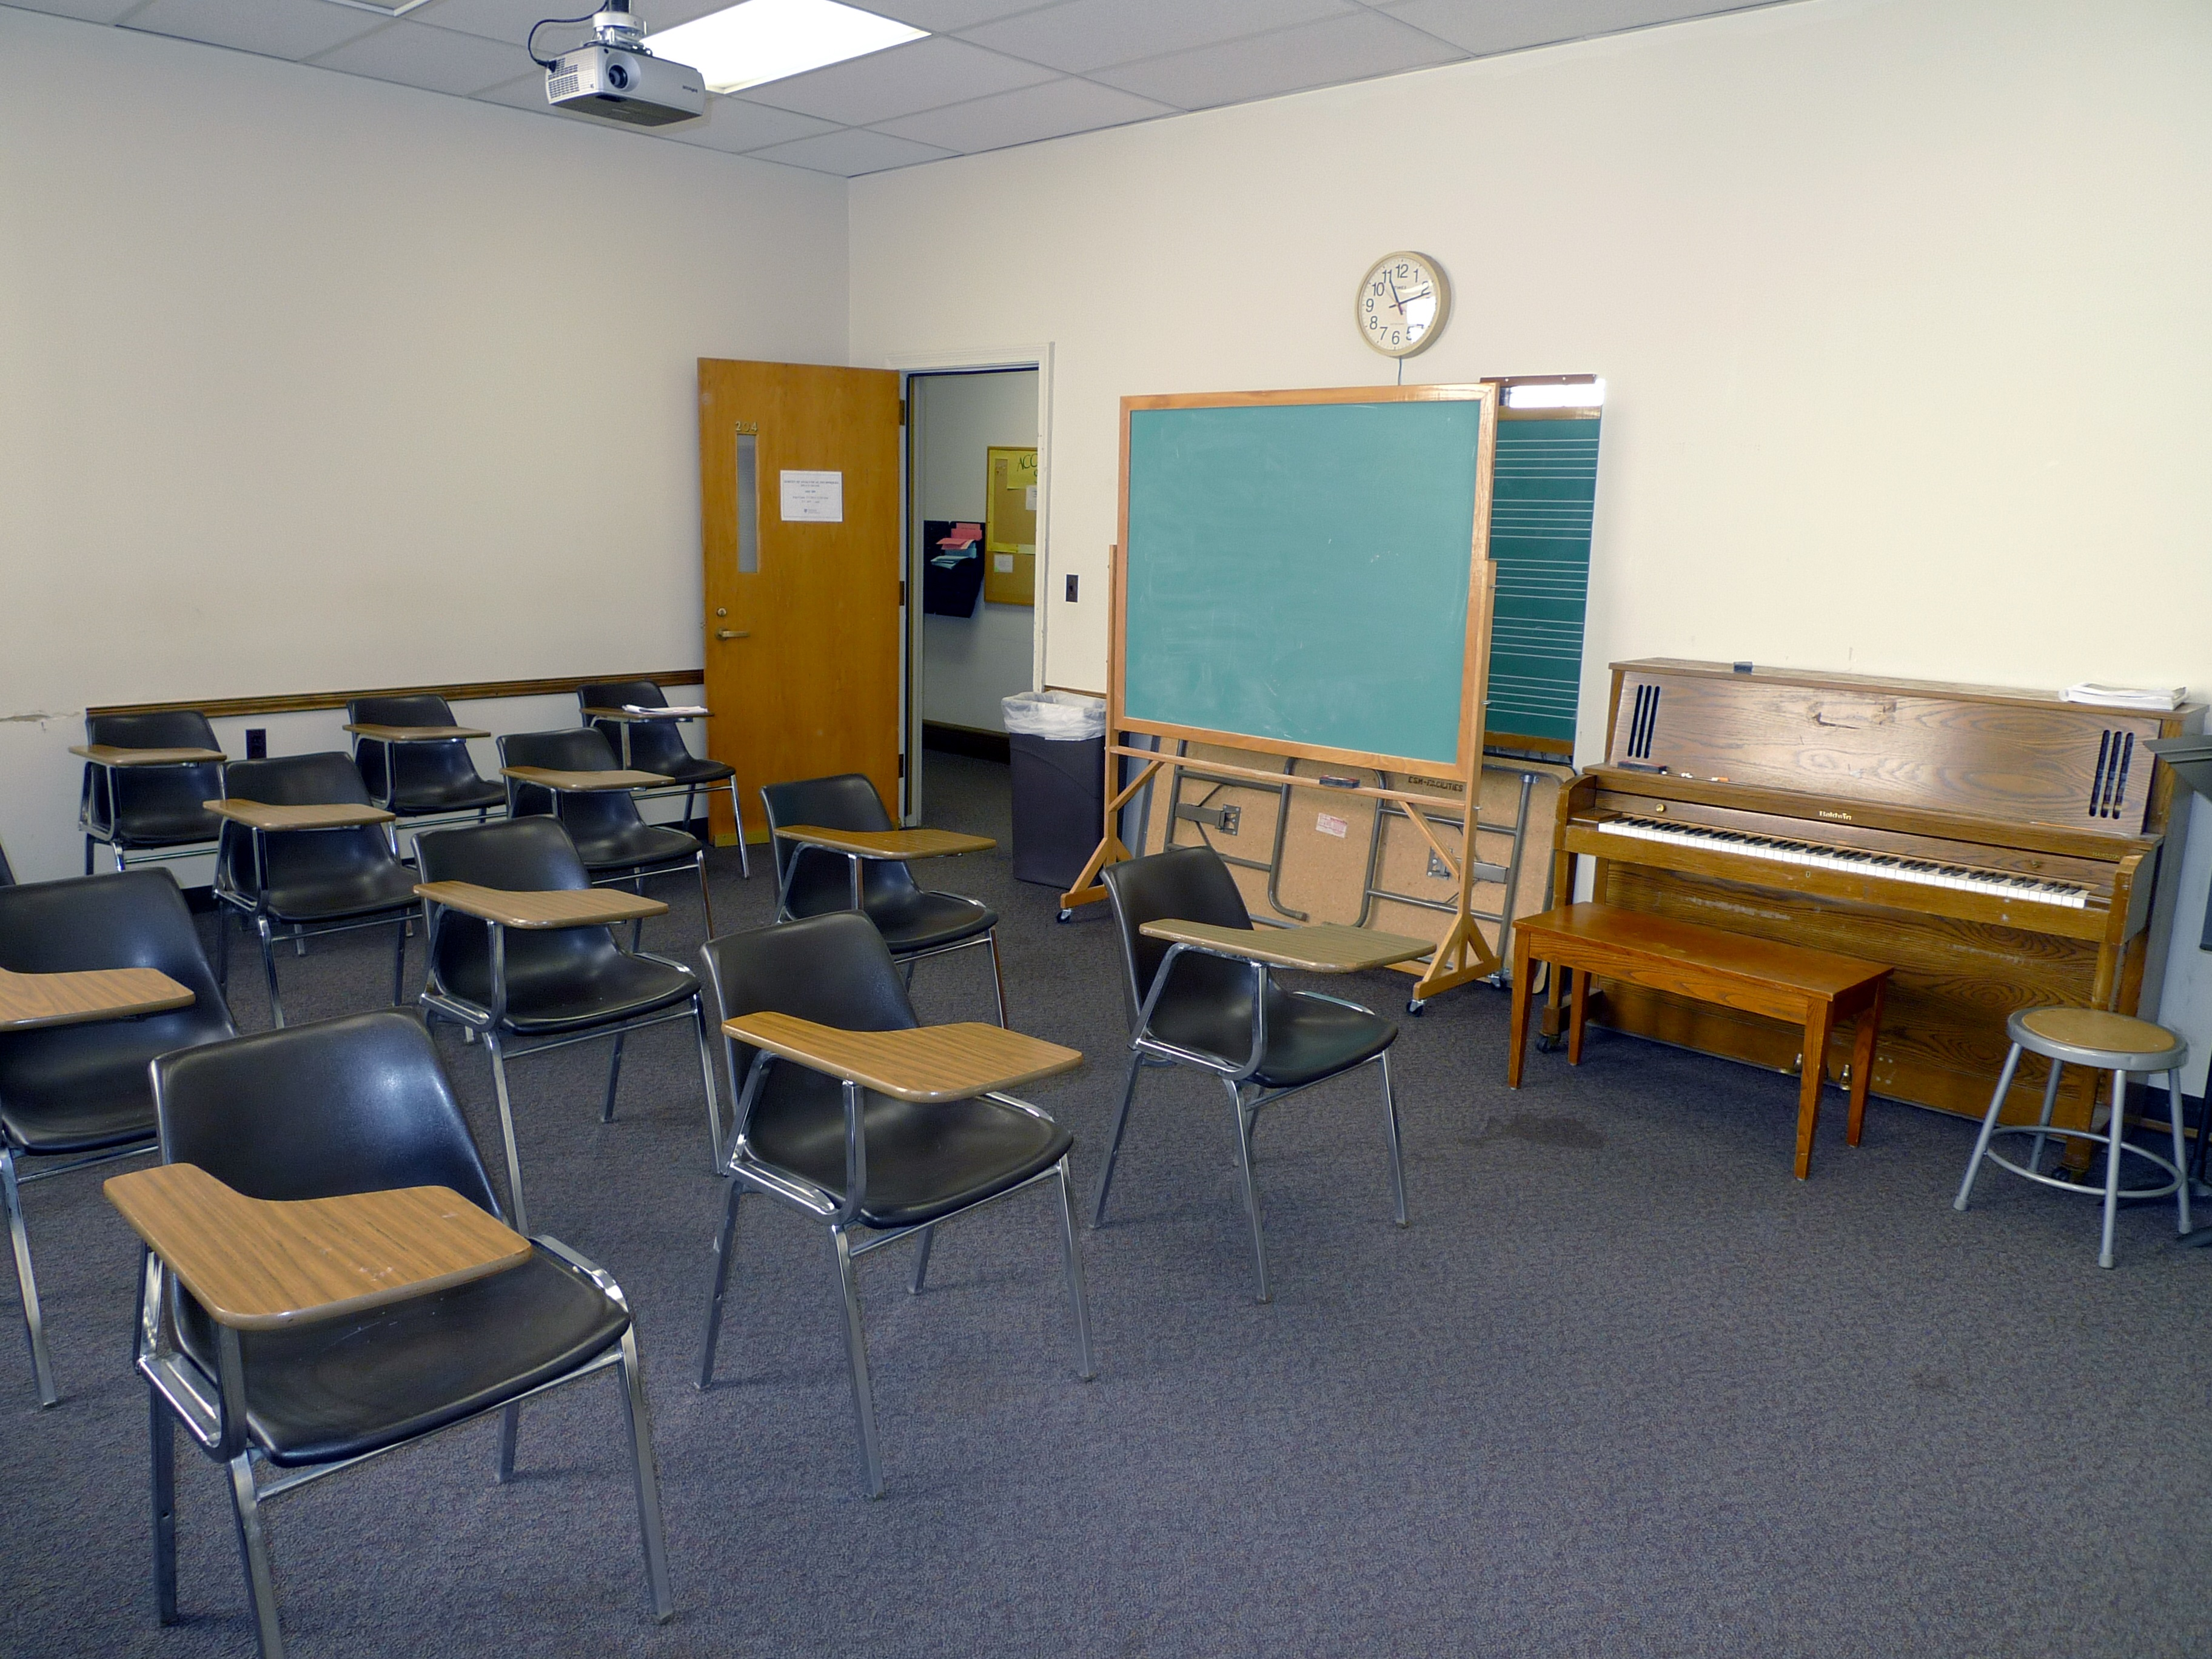 Old And New Sibley Library Class Rooms Technology And